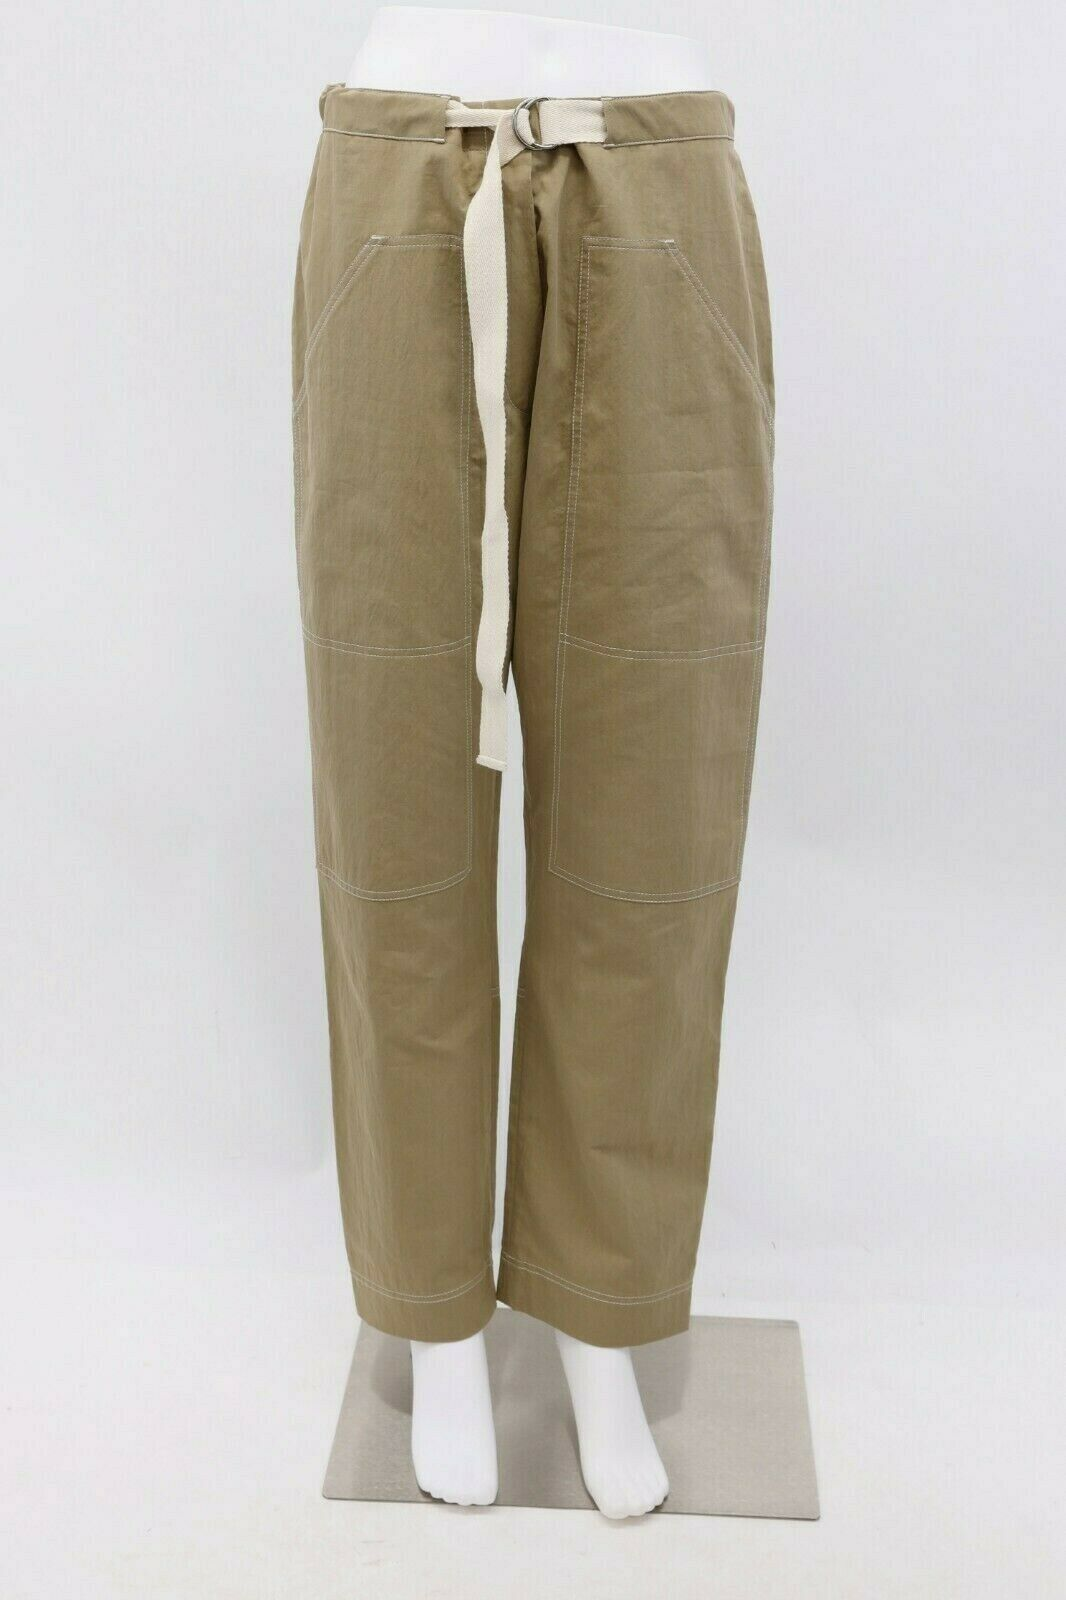 NWT 1195 Brunello Cucinelli damen Cotton Cargo Pant W Drawstring Belt42 6US A186